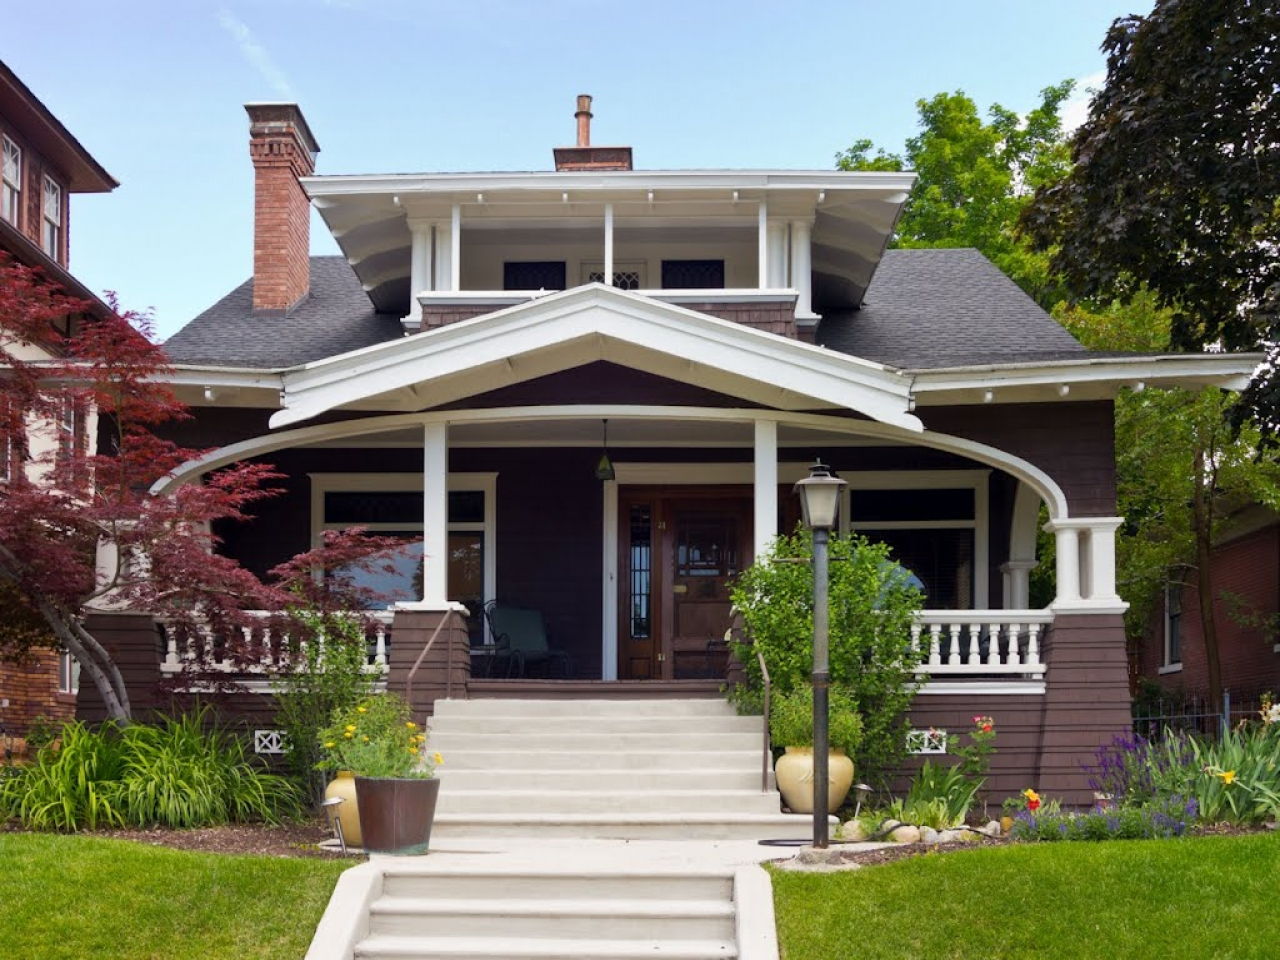 Craftsman bungalow style house plans craftsman bungalow for Craftsman bungalow architecture